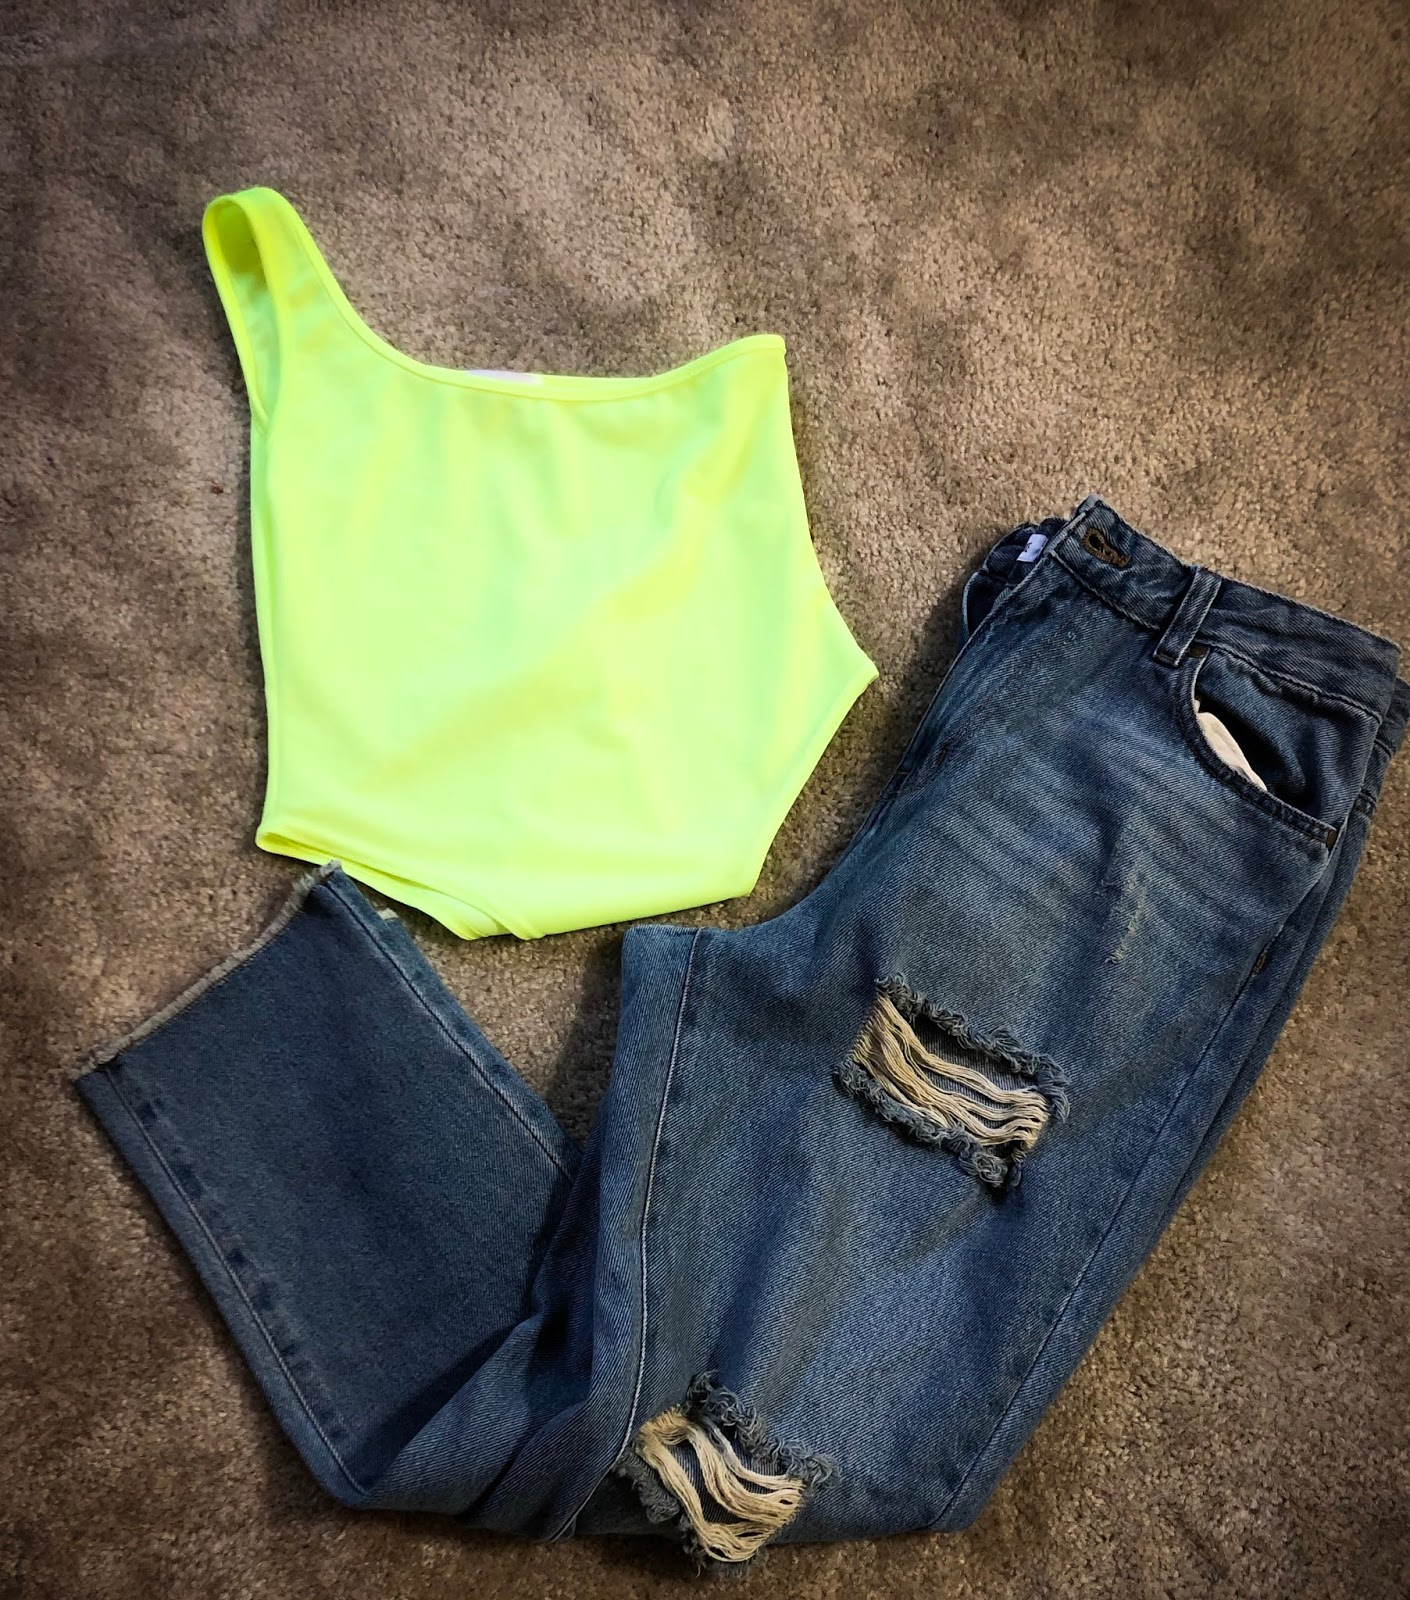 Femm luxe, luxe gal, summer trends, fall trends, neon green trend, mom jeans